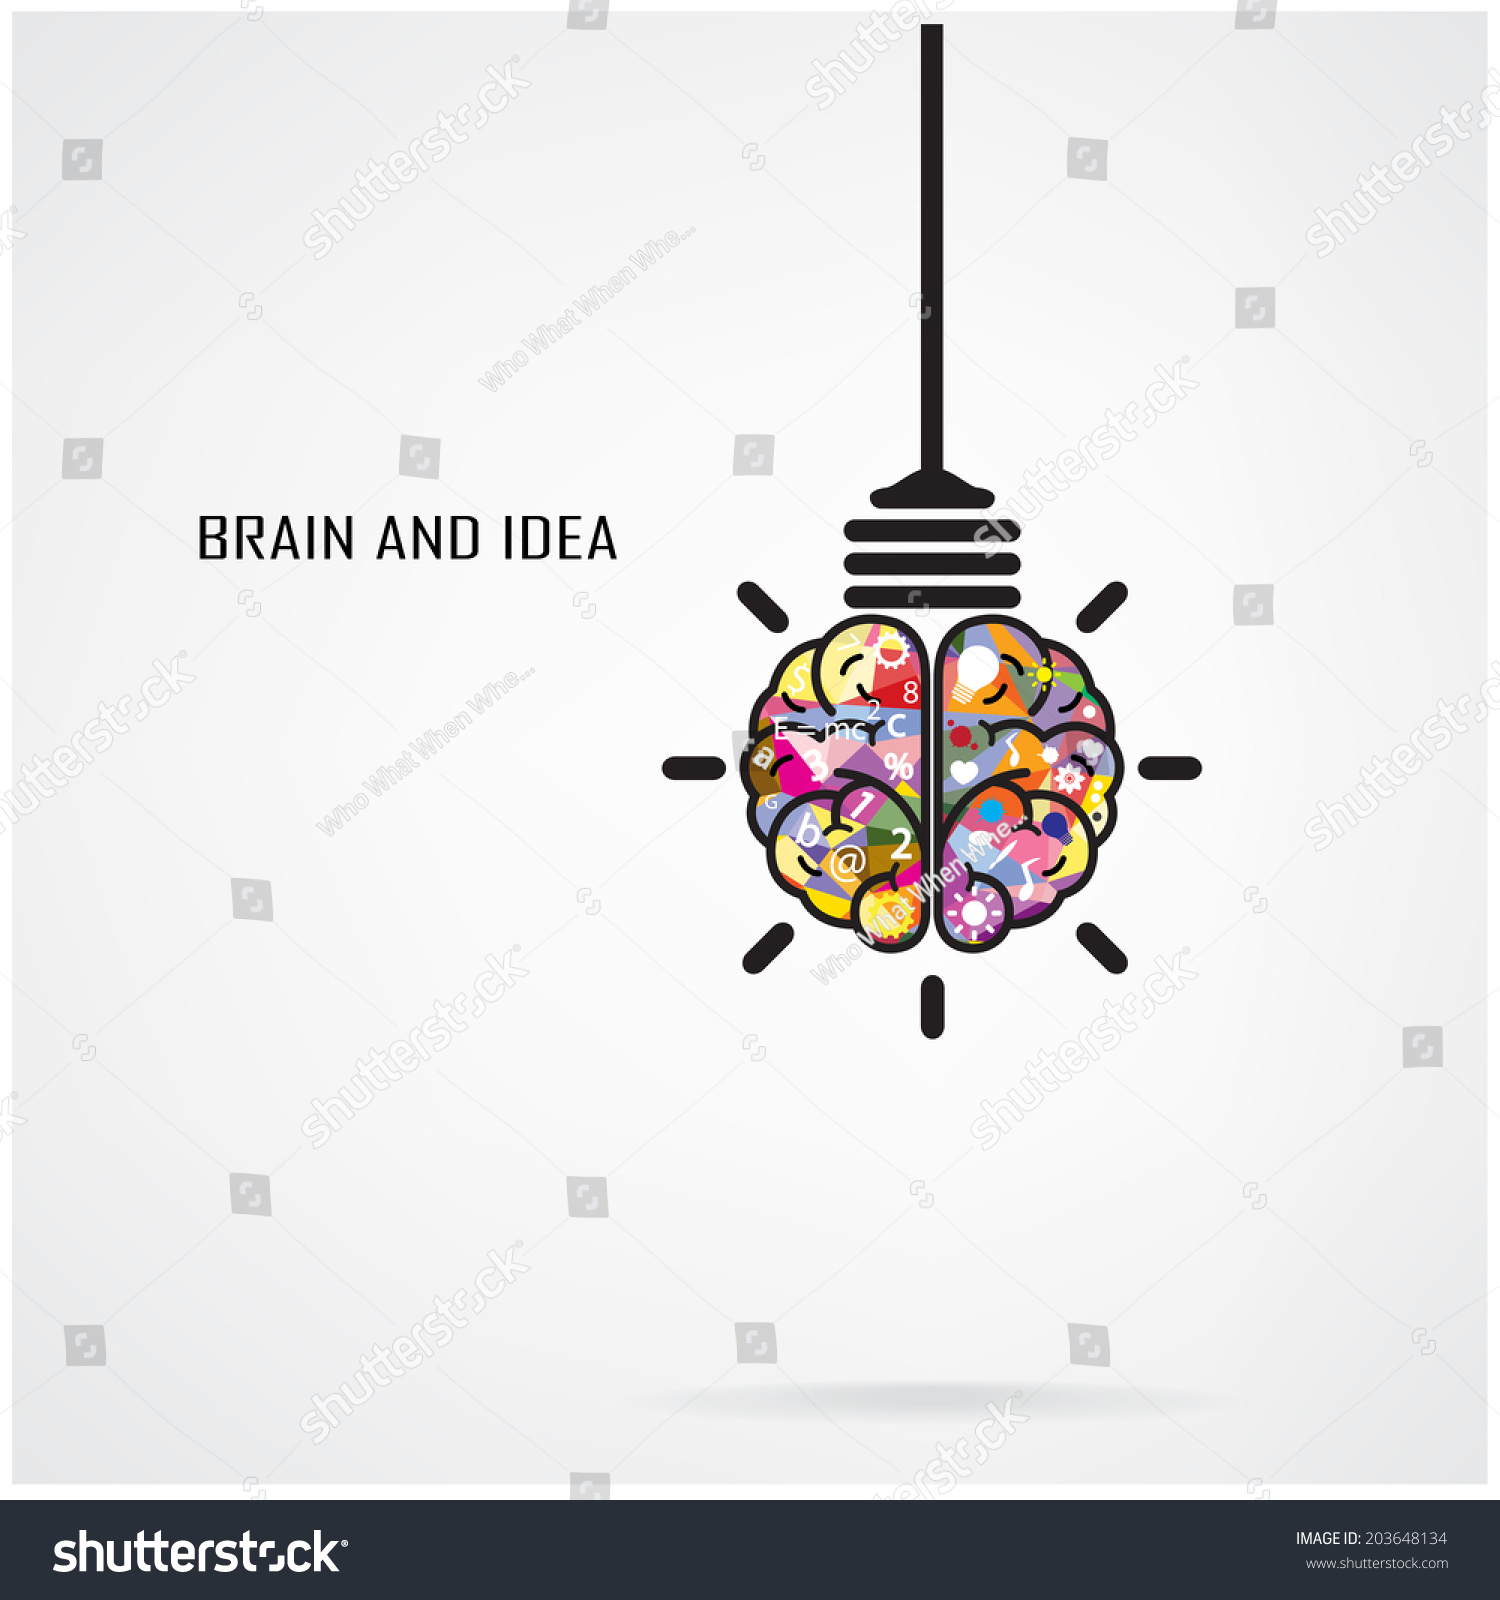 Graphic Design Business Ideas the anatomy of a business card infographic Creative Brain Idea And Light Bulb Concept Design For Poster Flyer Cover Brochure Business Idea